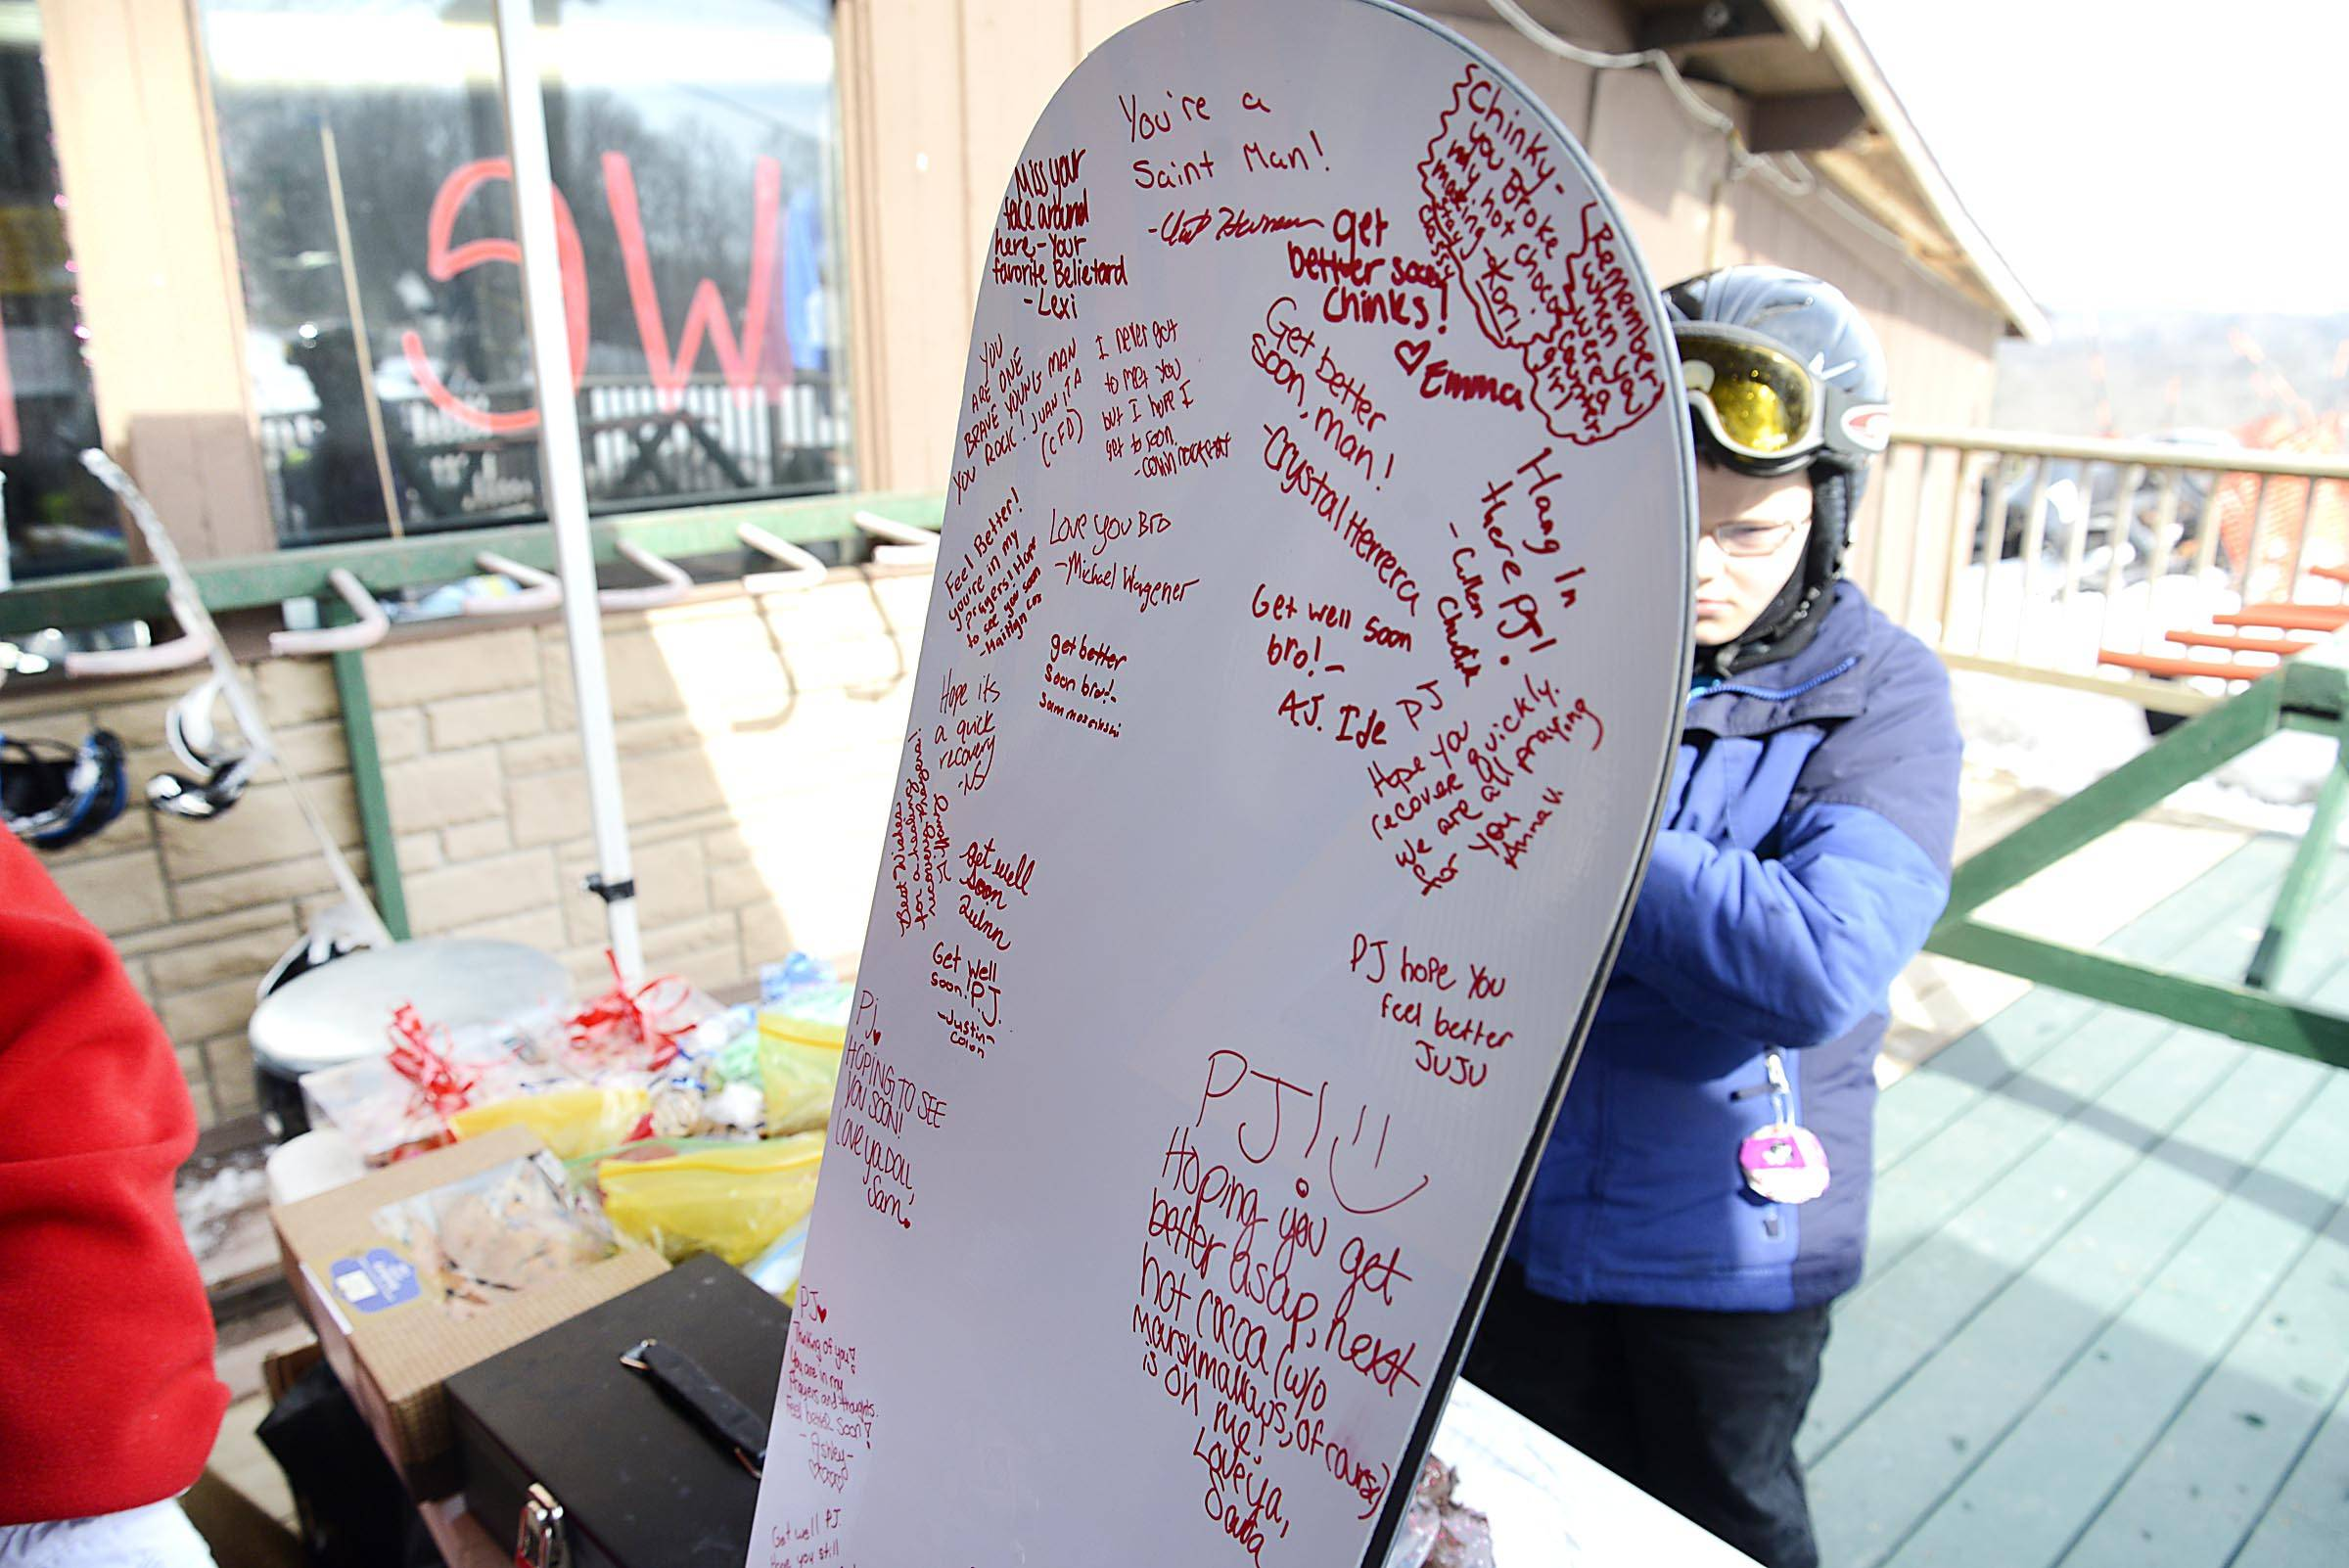 A new snowboard, autographed with well wishes from dozens of supporters, sits at a table full of donated goods being sold to raise money for a 17-year-old boy injured March 2 when he was caught in a machine at the Raging Buffalo Snow Park in Algonquin. The snowboard will be given to P.J. O'Donnell after the fundraiser.